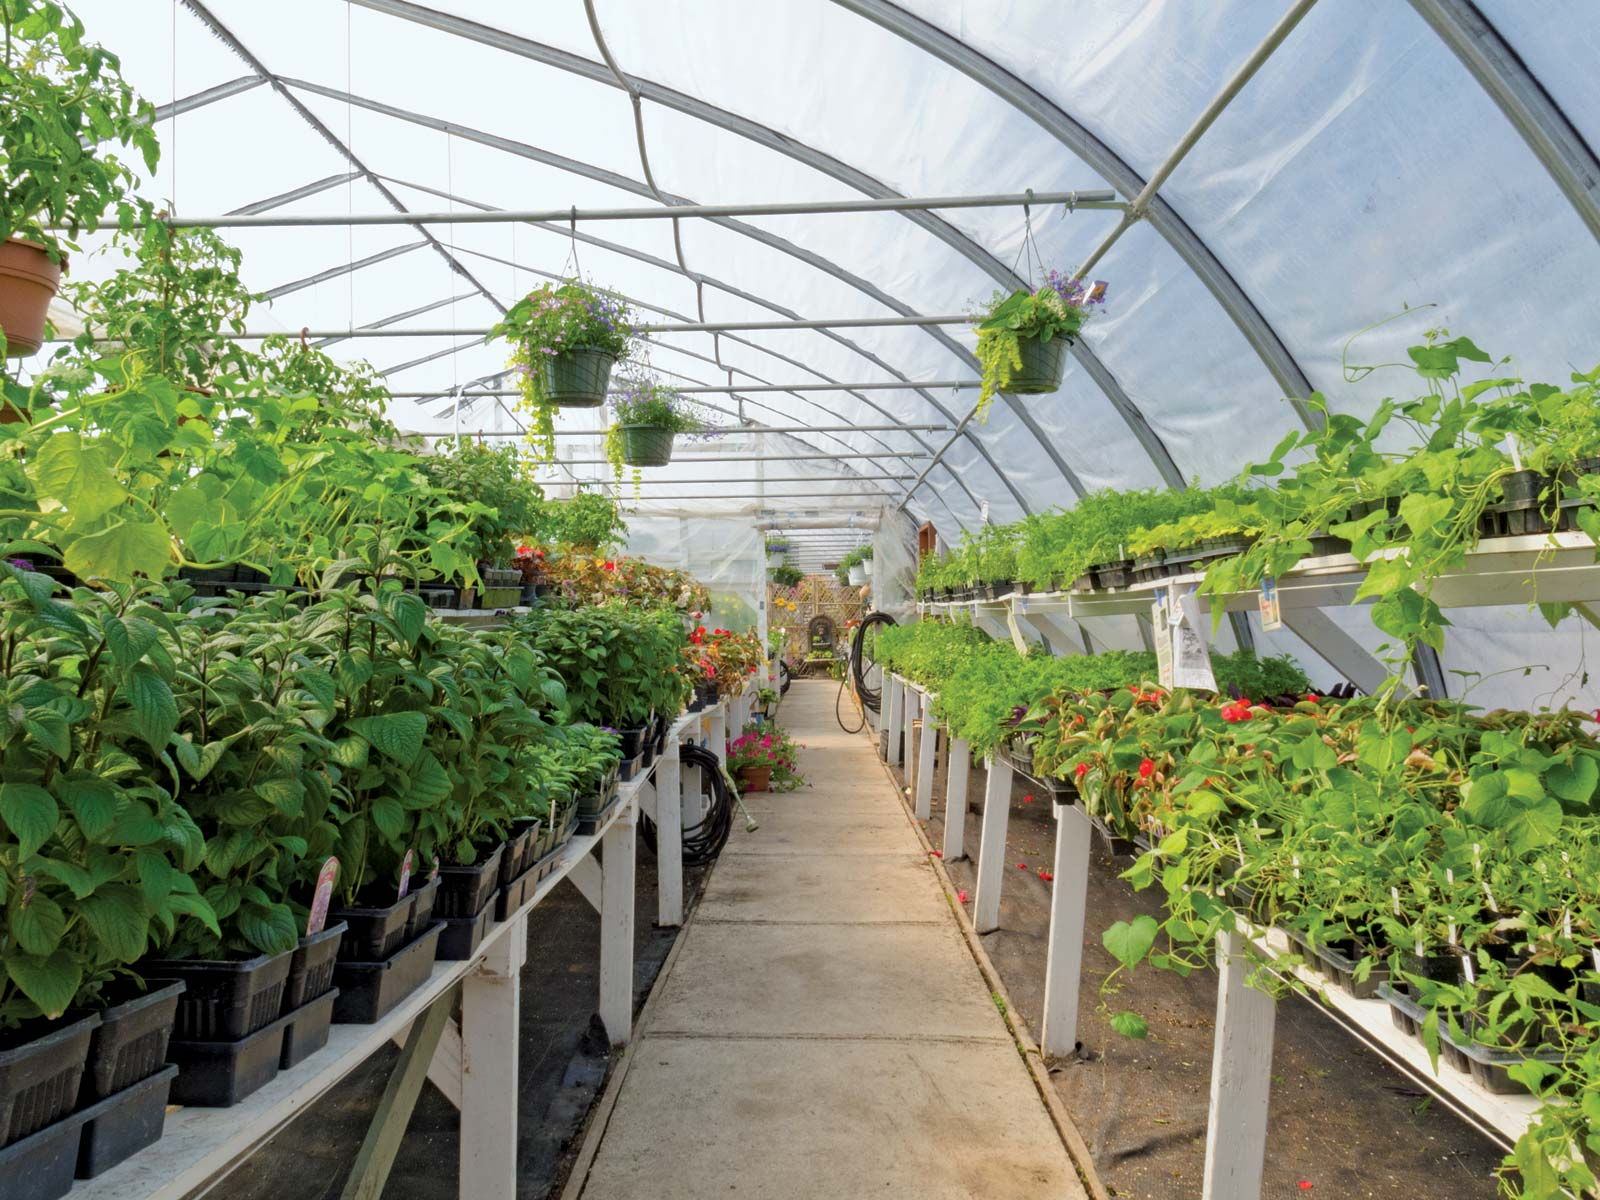 Farmers urged to venture into horticulture for EAC market